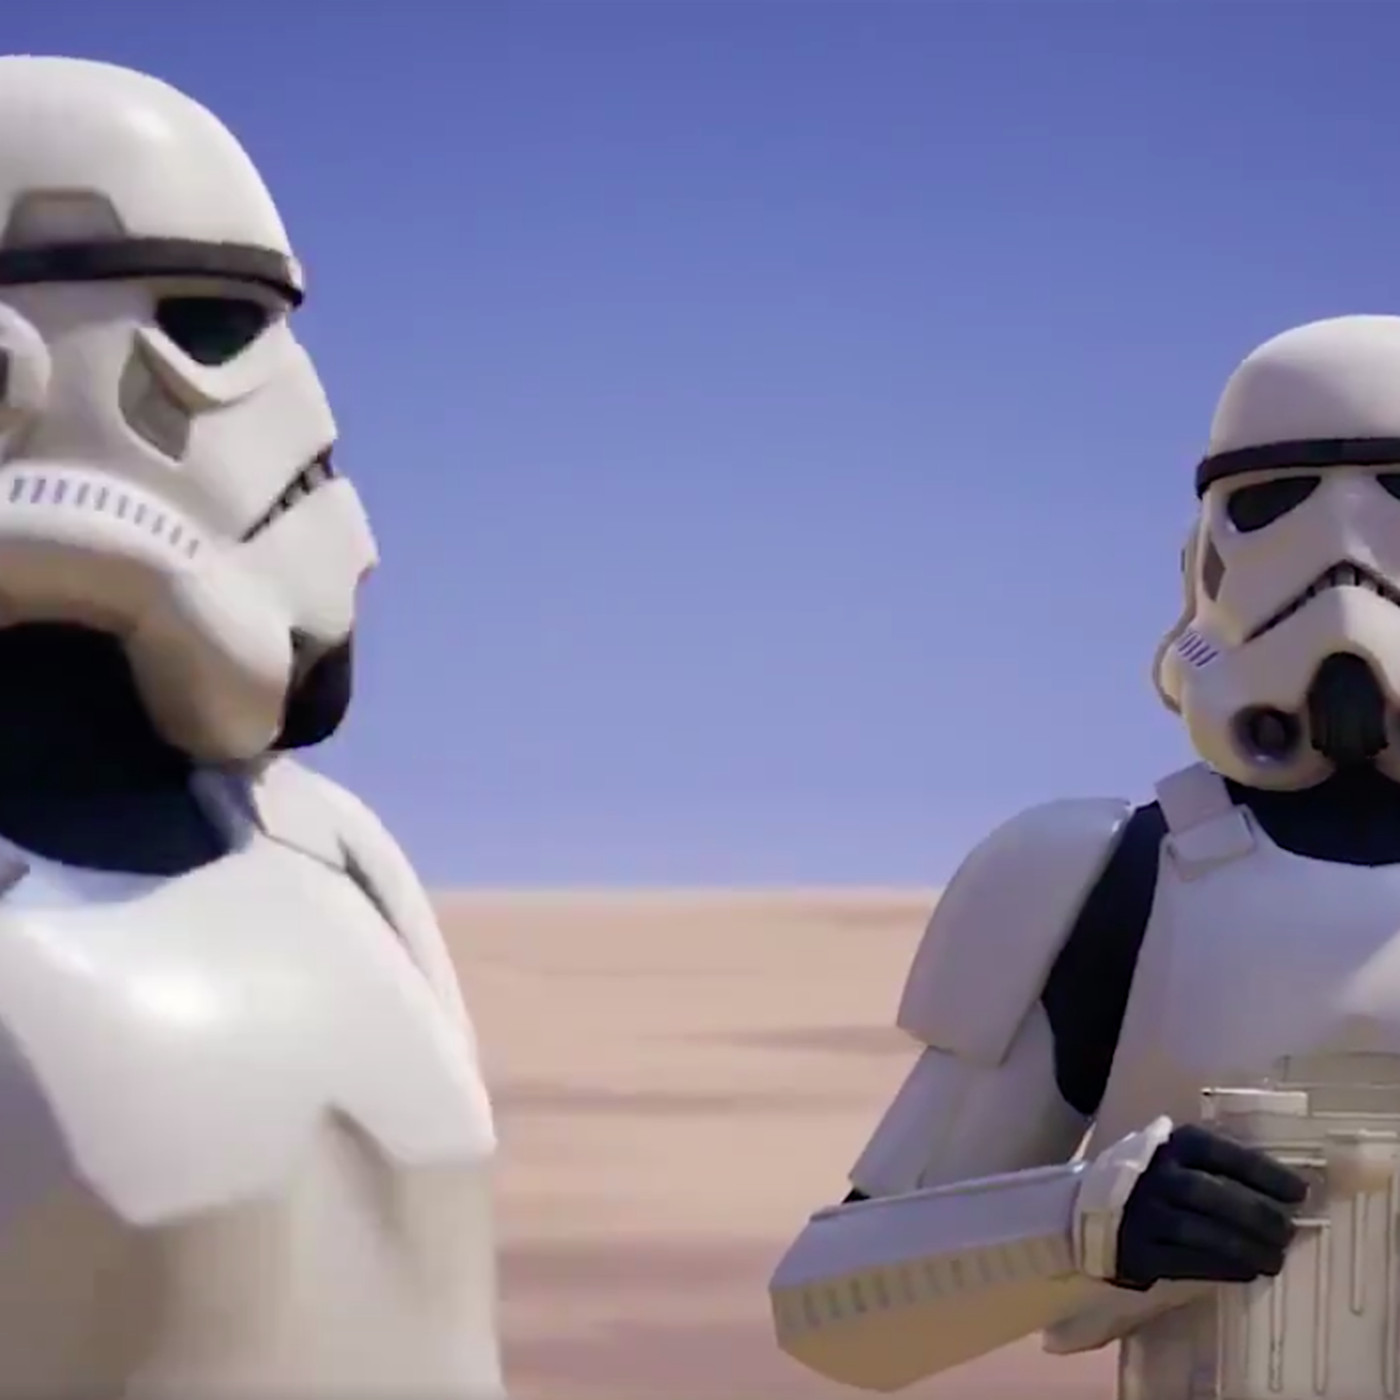 Watch A Star Wars Clip In Fortnite This Saturday To Get A